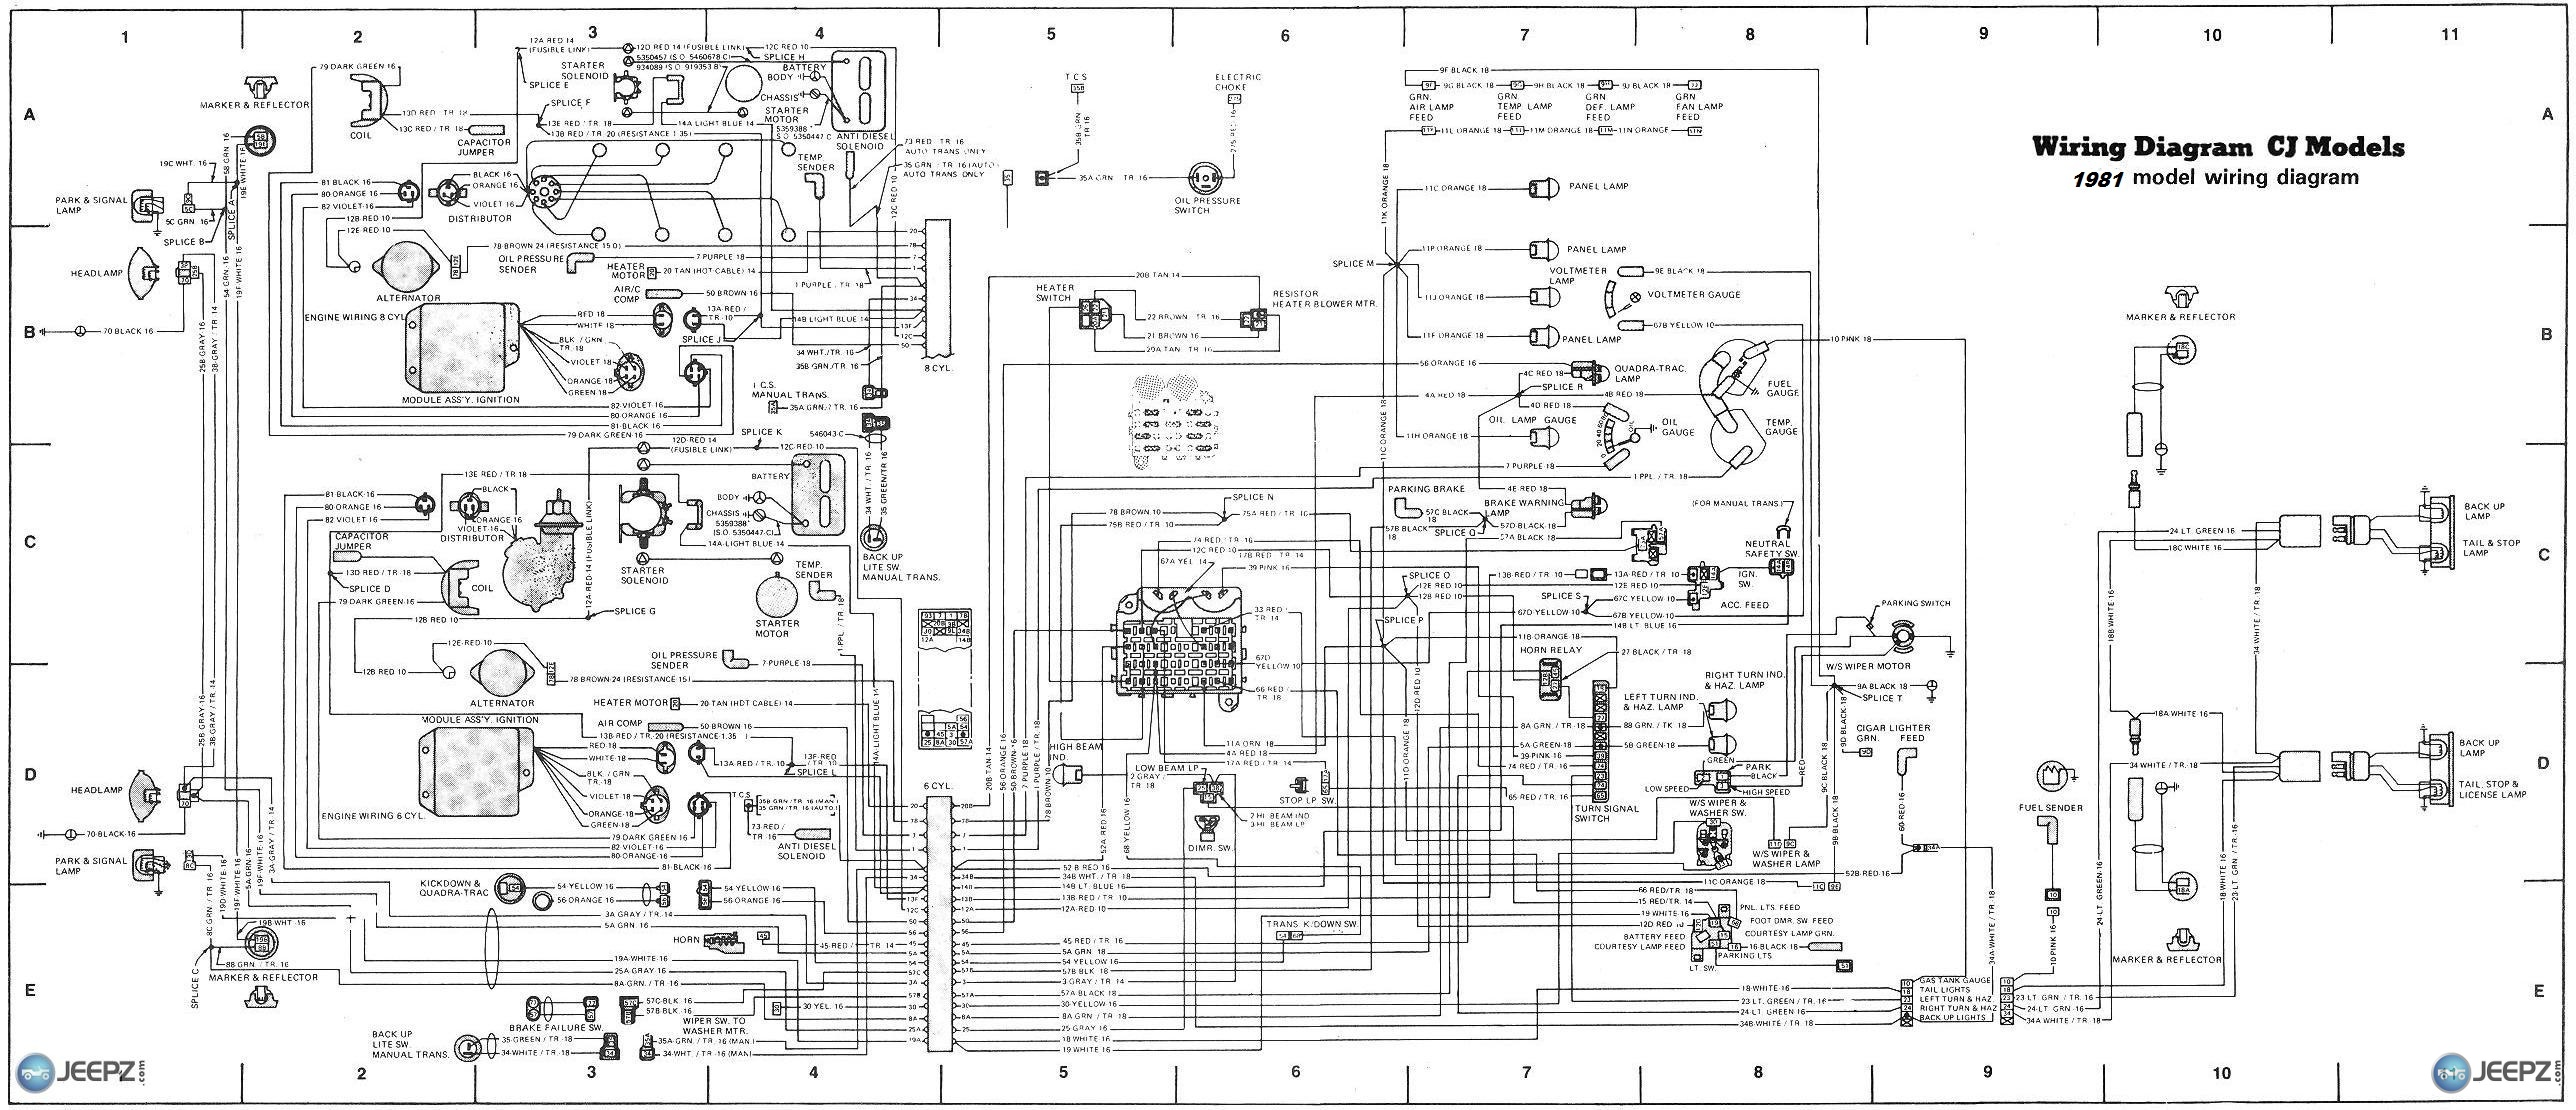 1980 jeep cj7 wiring diagram auto electrical wiring diagram 1976 jeep cj7  wiring-diagram 1980